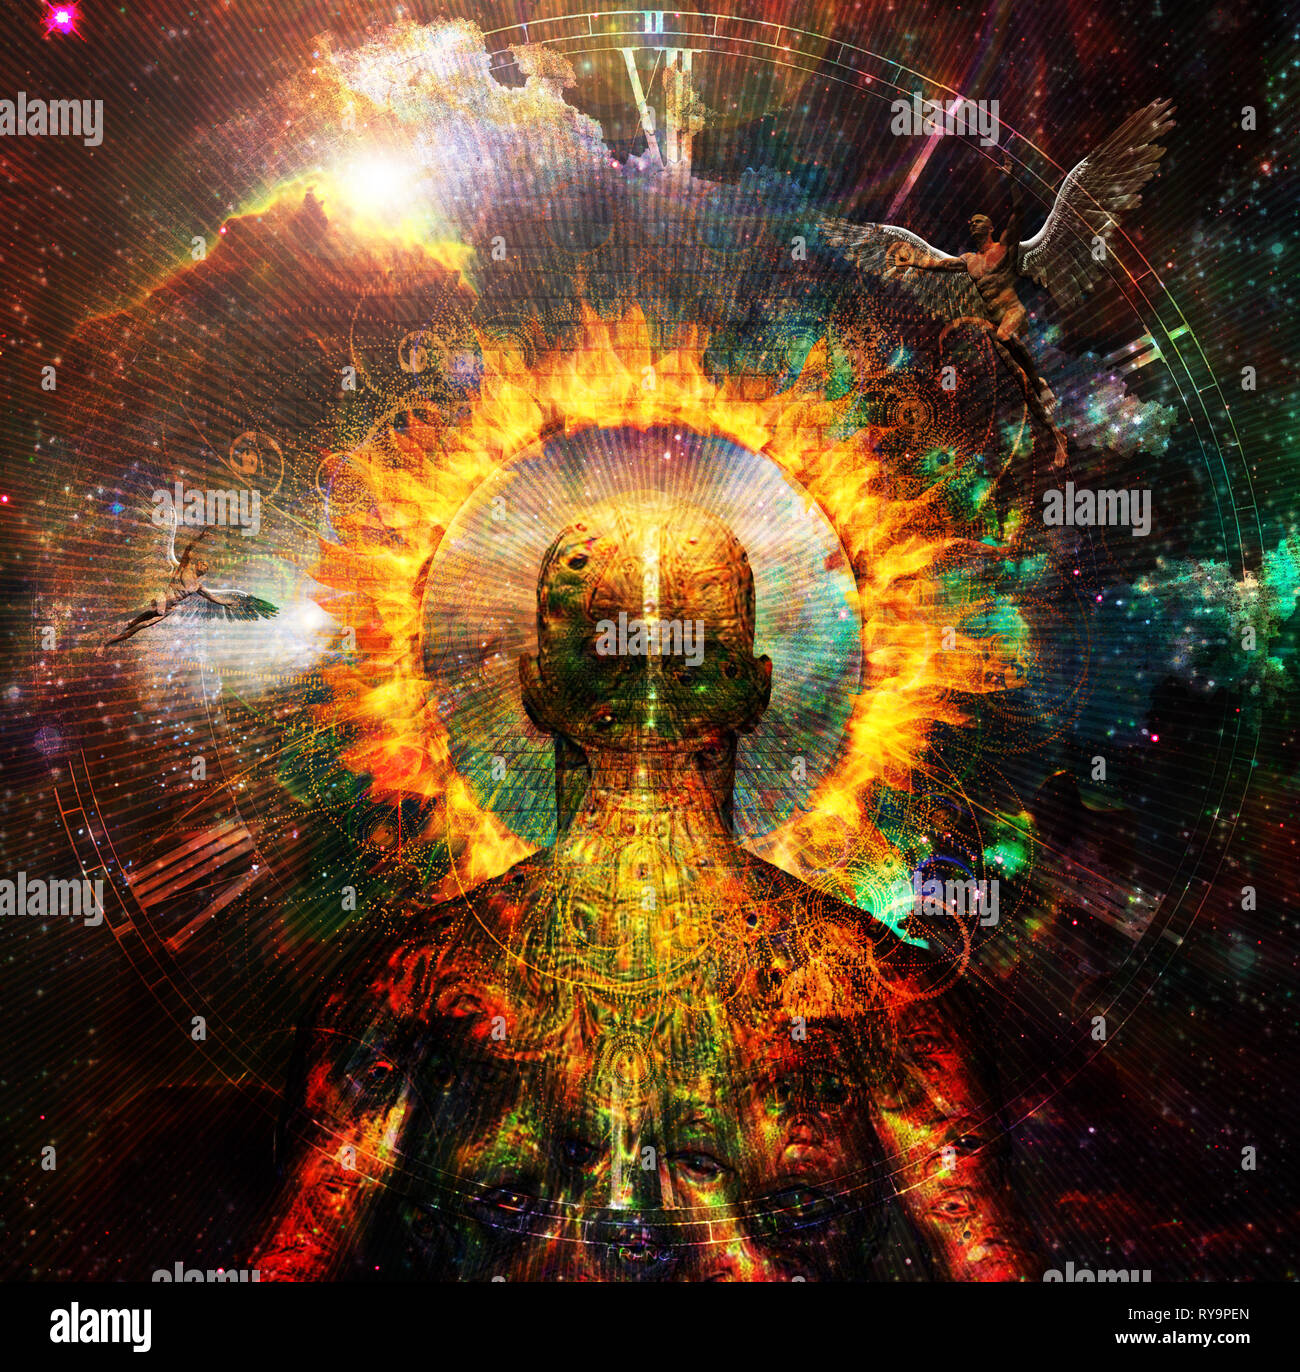 Spiritual composition with angels and ring of fire. The way to another world - Stock Image